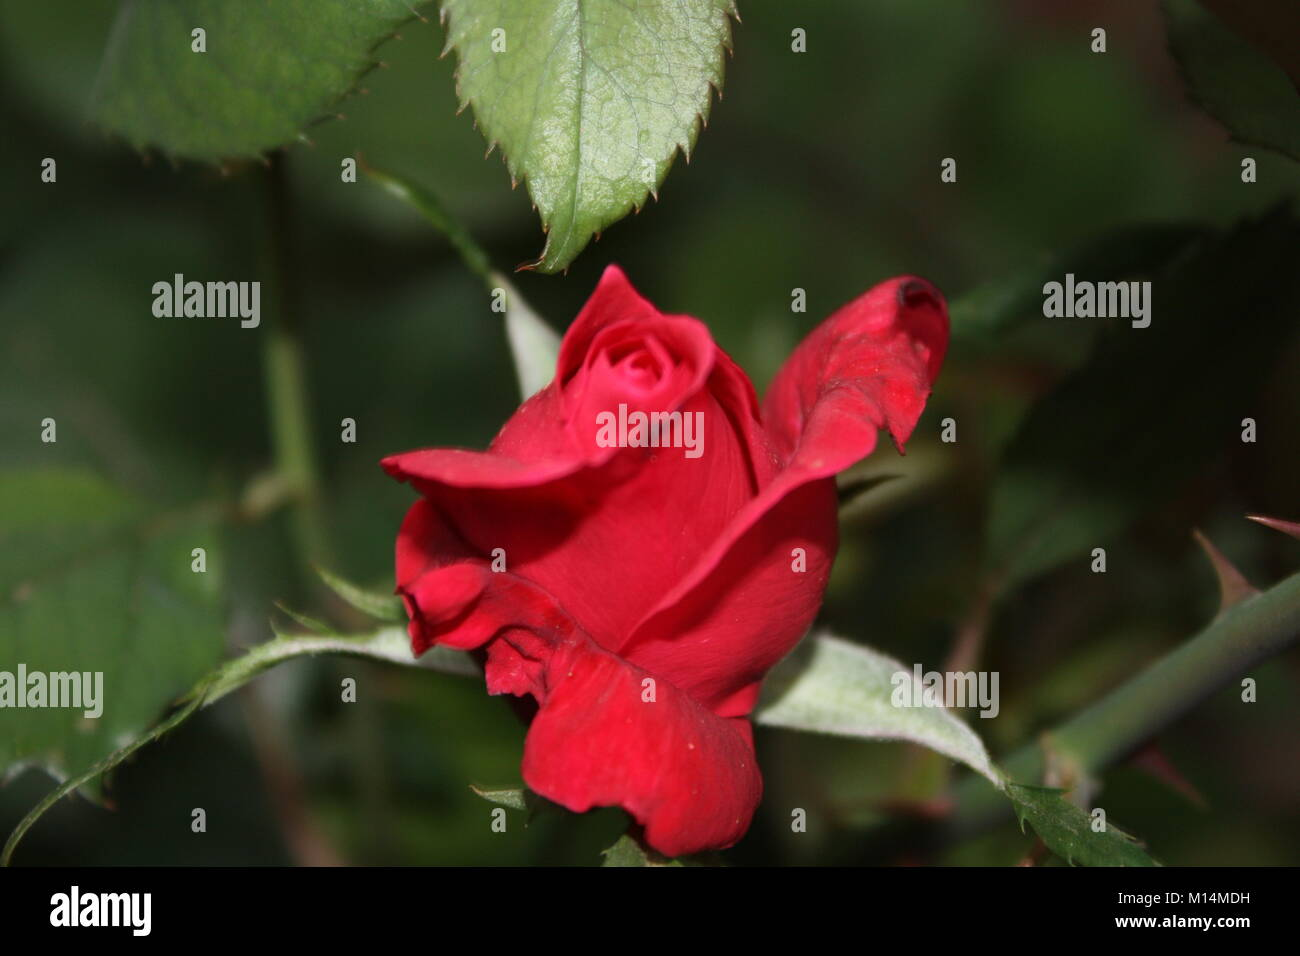 Beautiful Pictures Of Flowers And Greenery Taken Around Where I Live